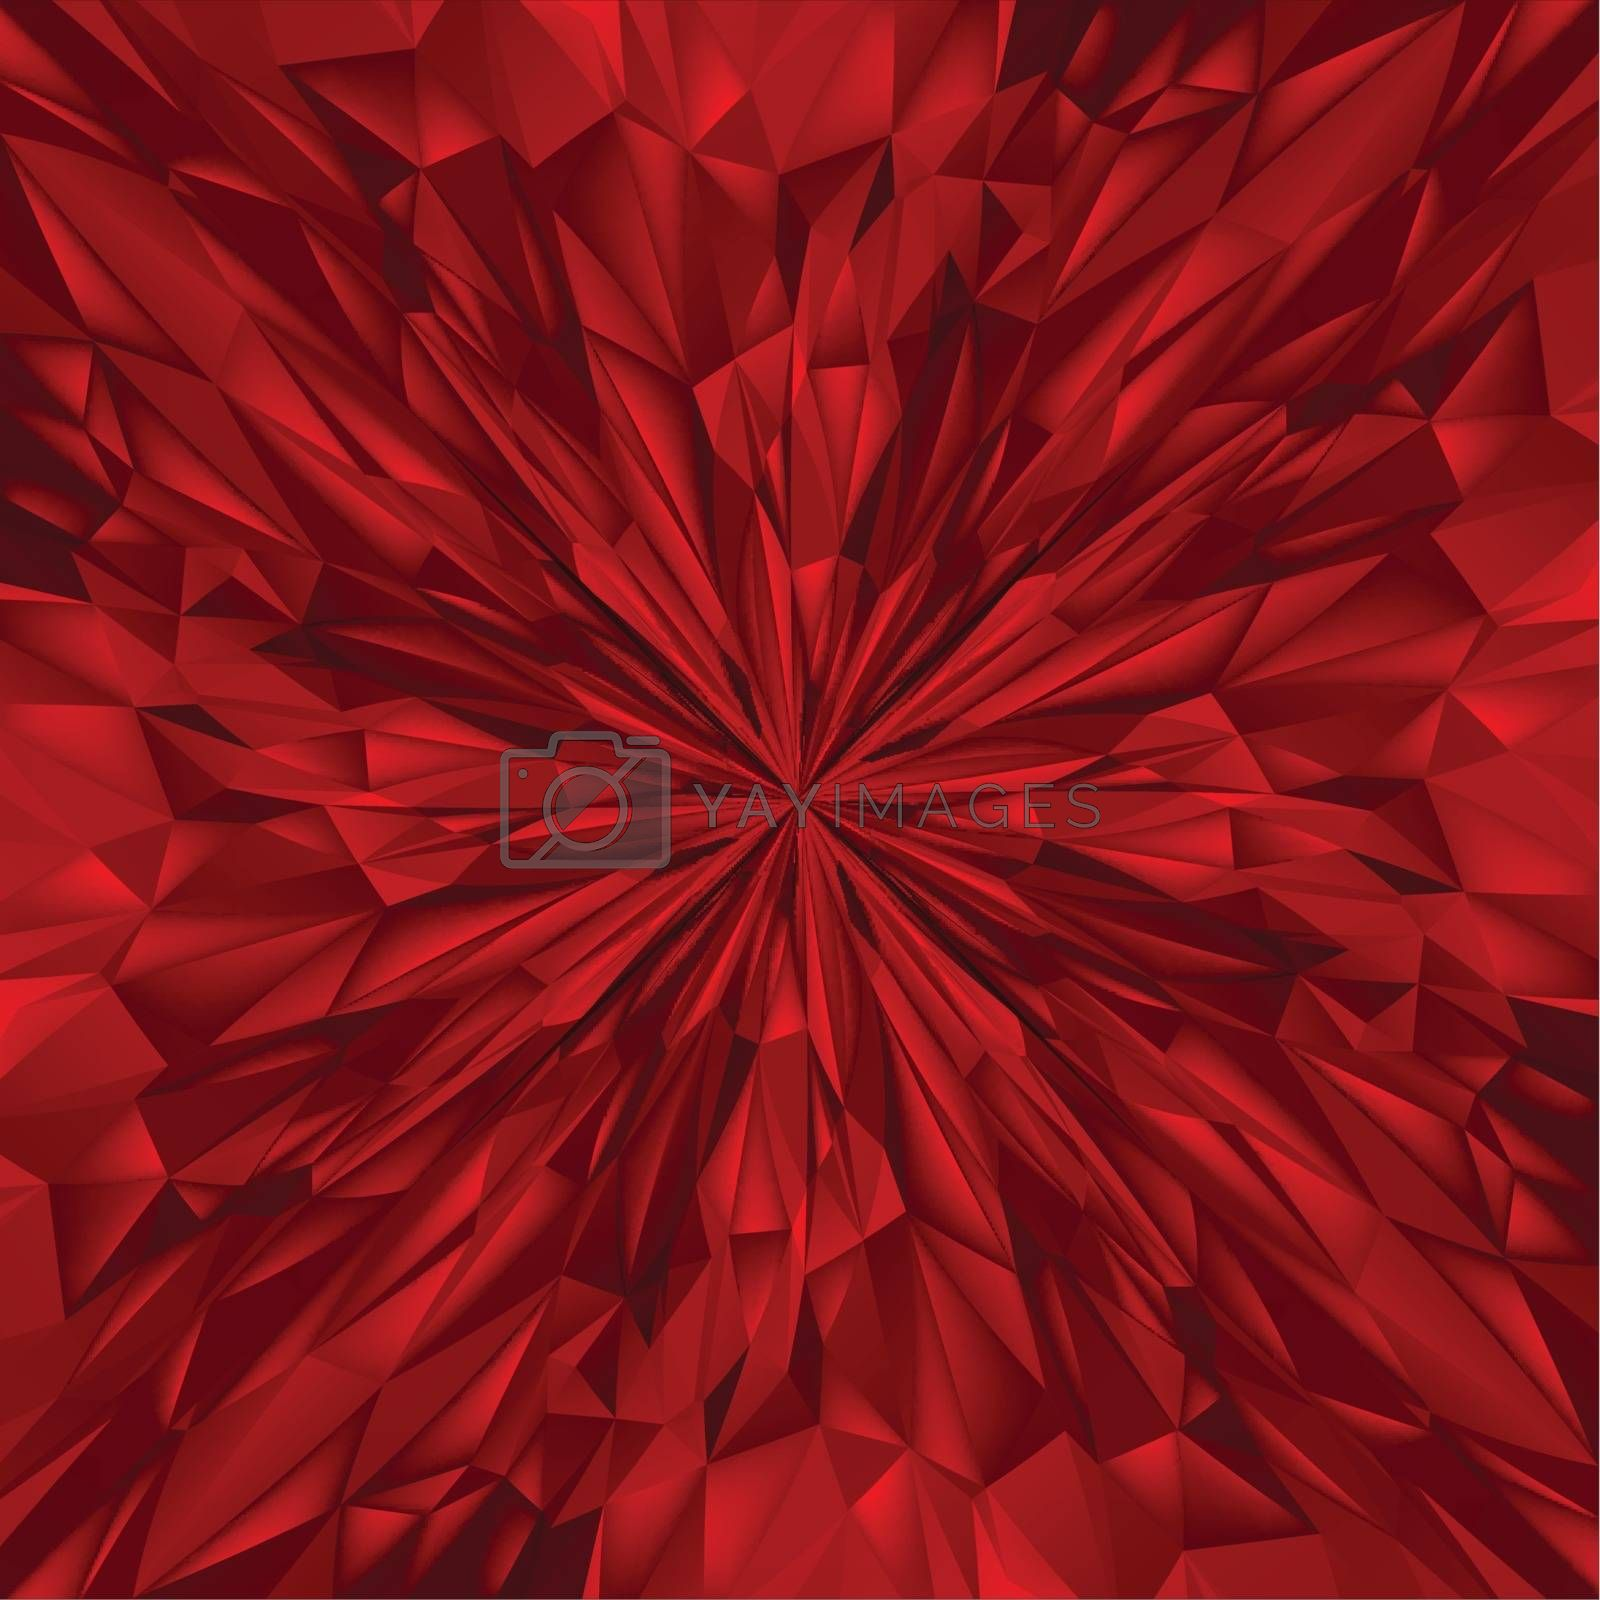 Abstract Red Composition. Magic Explosion Star with Particles. Illustration for Design